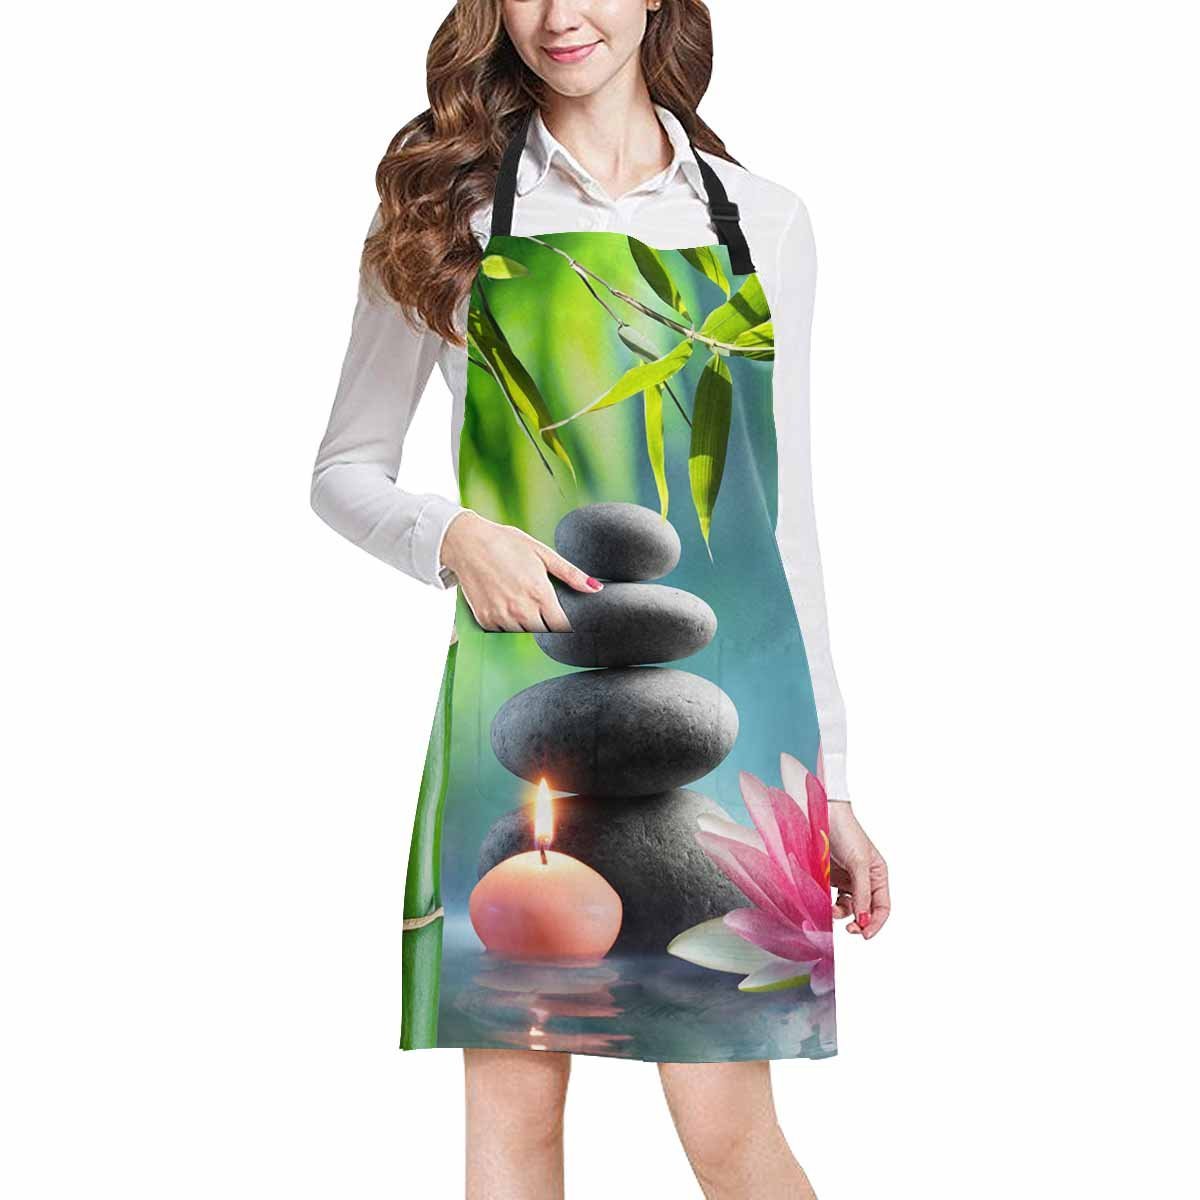 InterestPrint Spa Natural Theme with Bamboo Massage Stones and Waterlily Chef Kitchen Apron, Adjustable Strap & Waist Ties, Front Pockets, Perfect for Cooking, Baking, Barbequing, Large Size